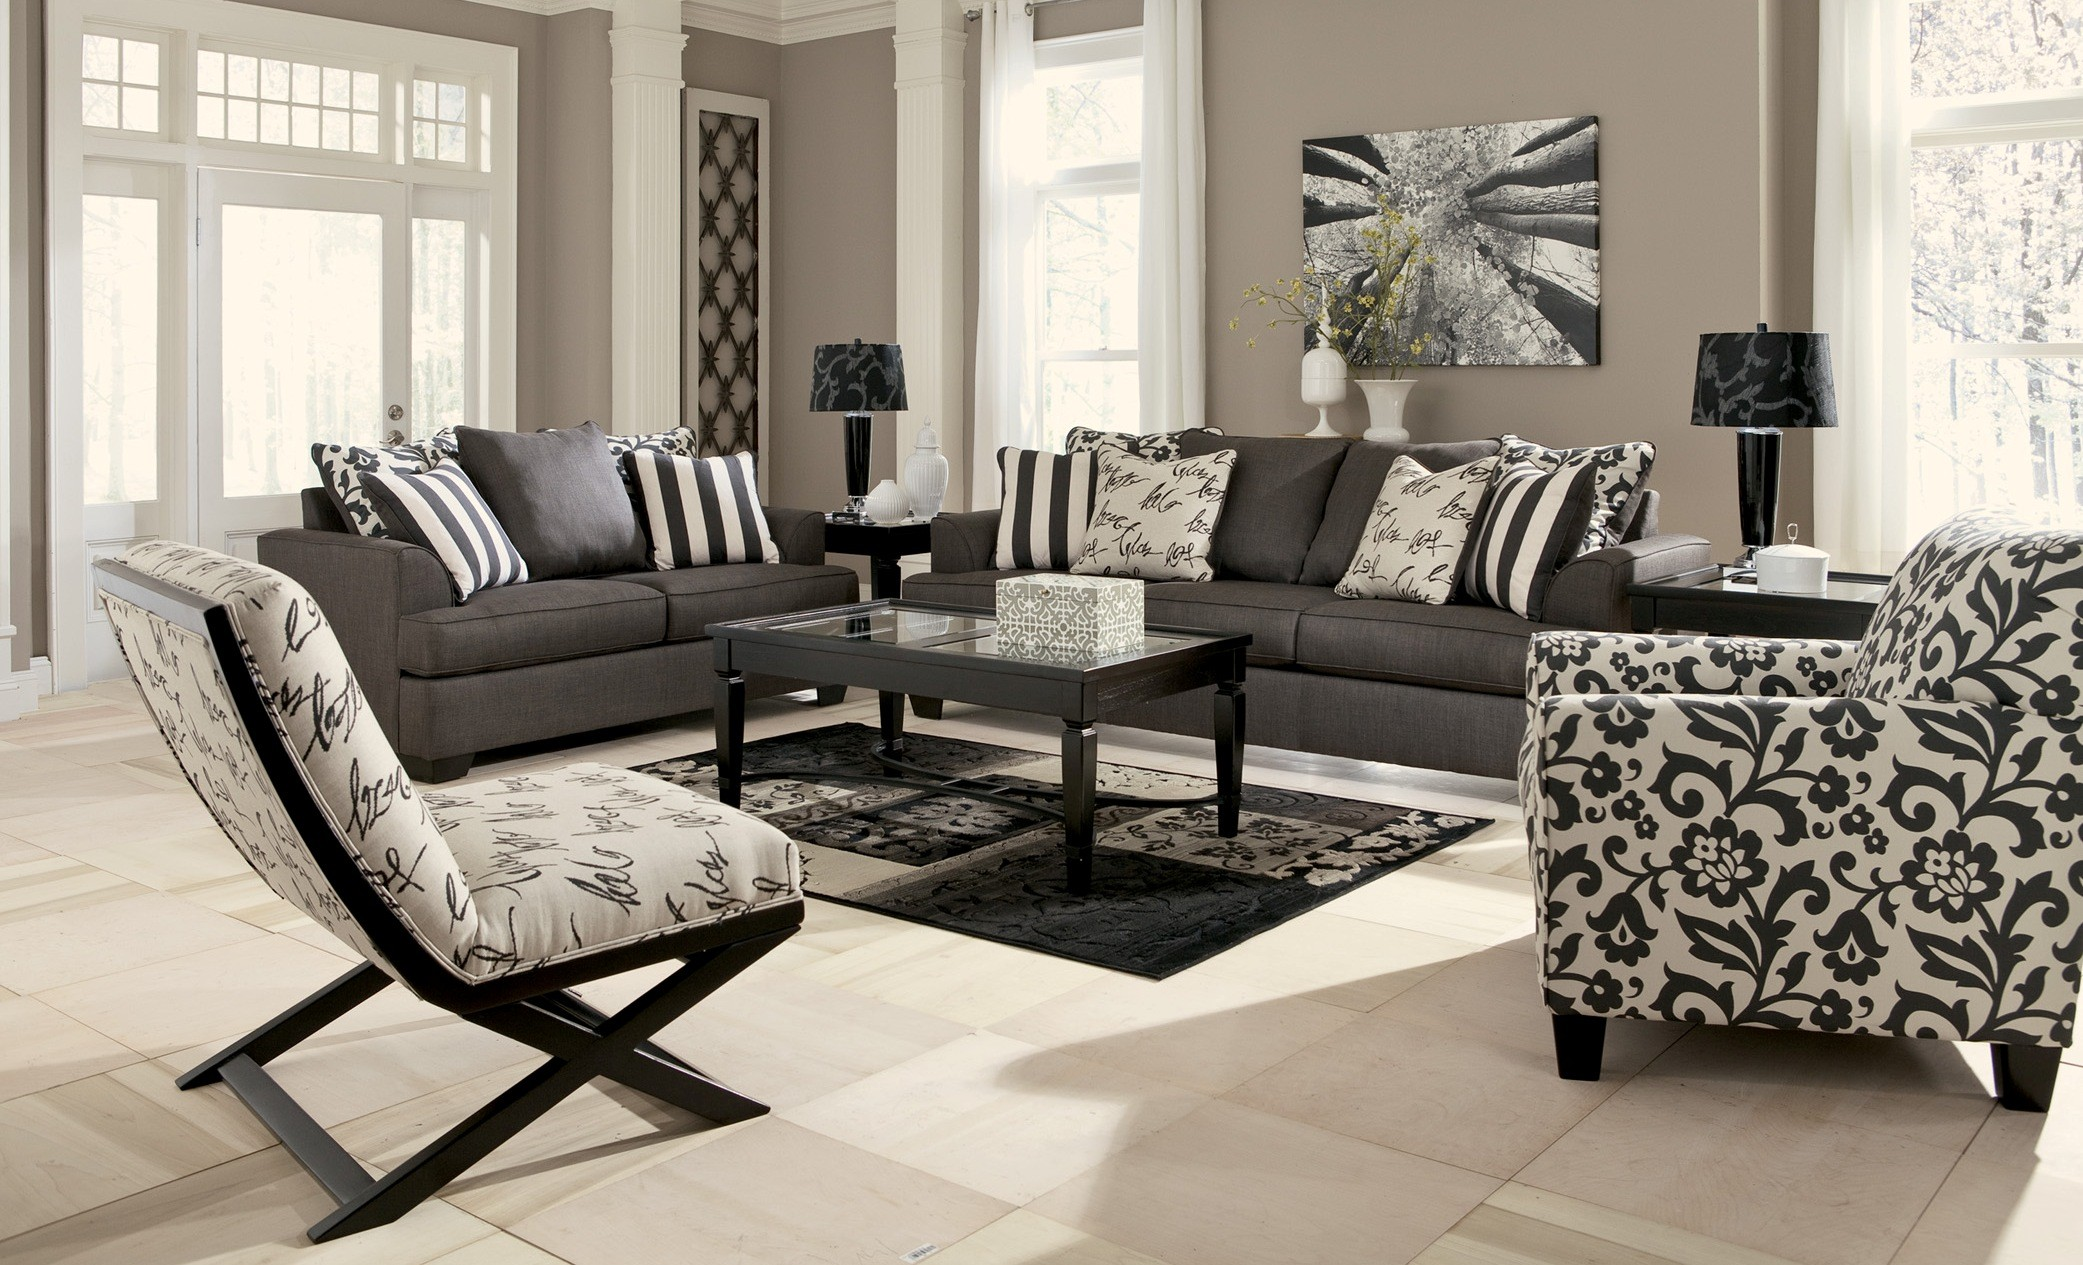 Living Room Sets Ashley levon charcoal living room set from ashley (73403) | coleman furniture